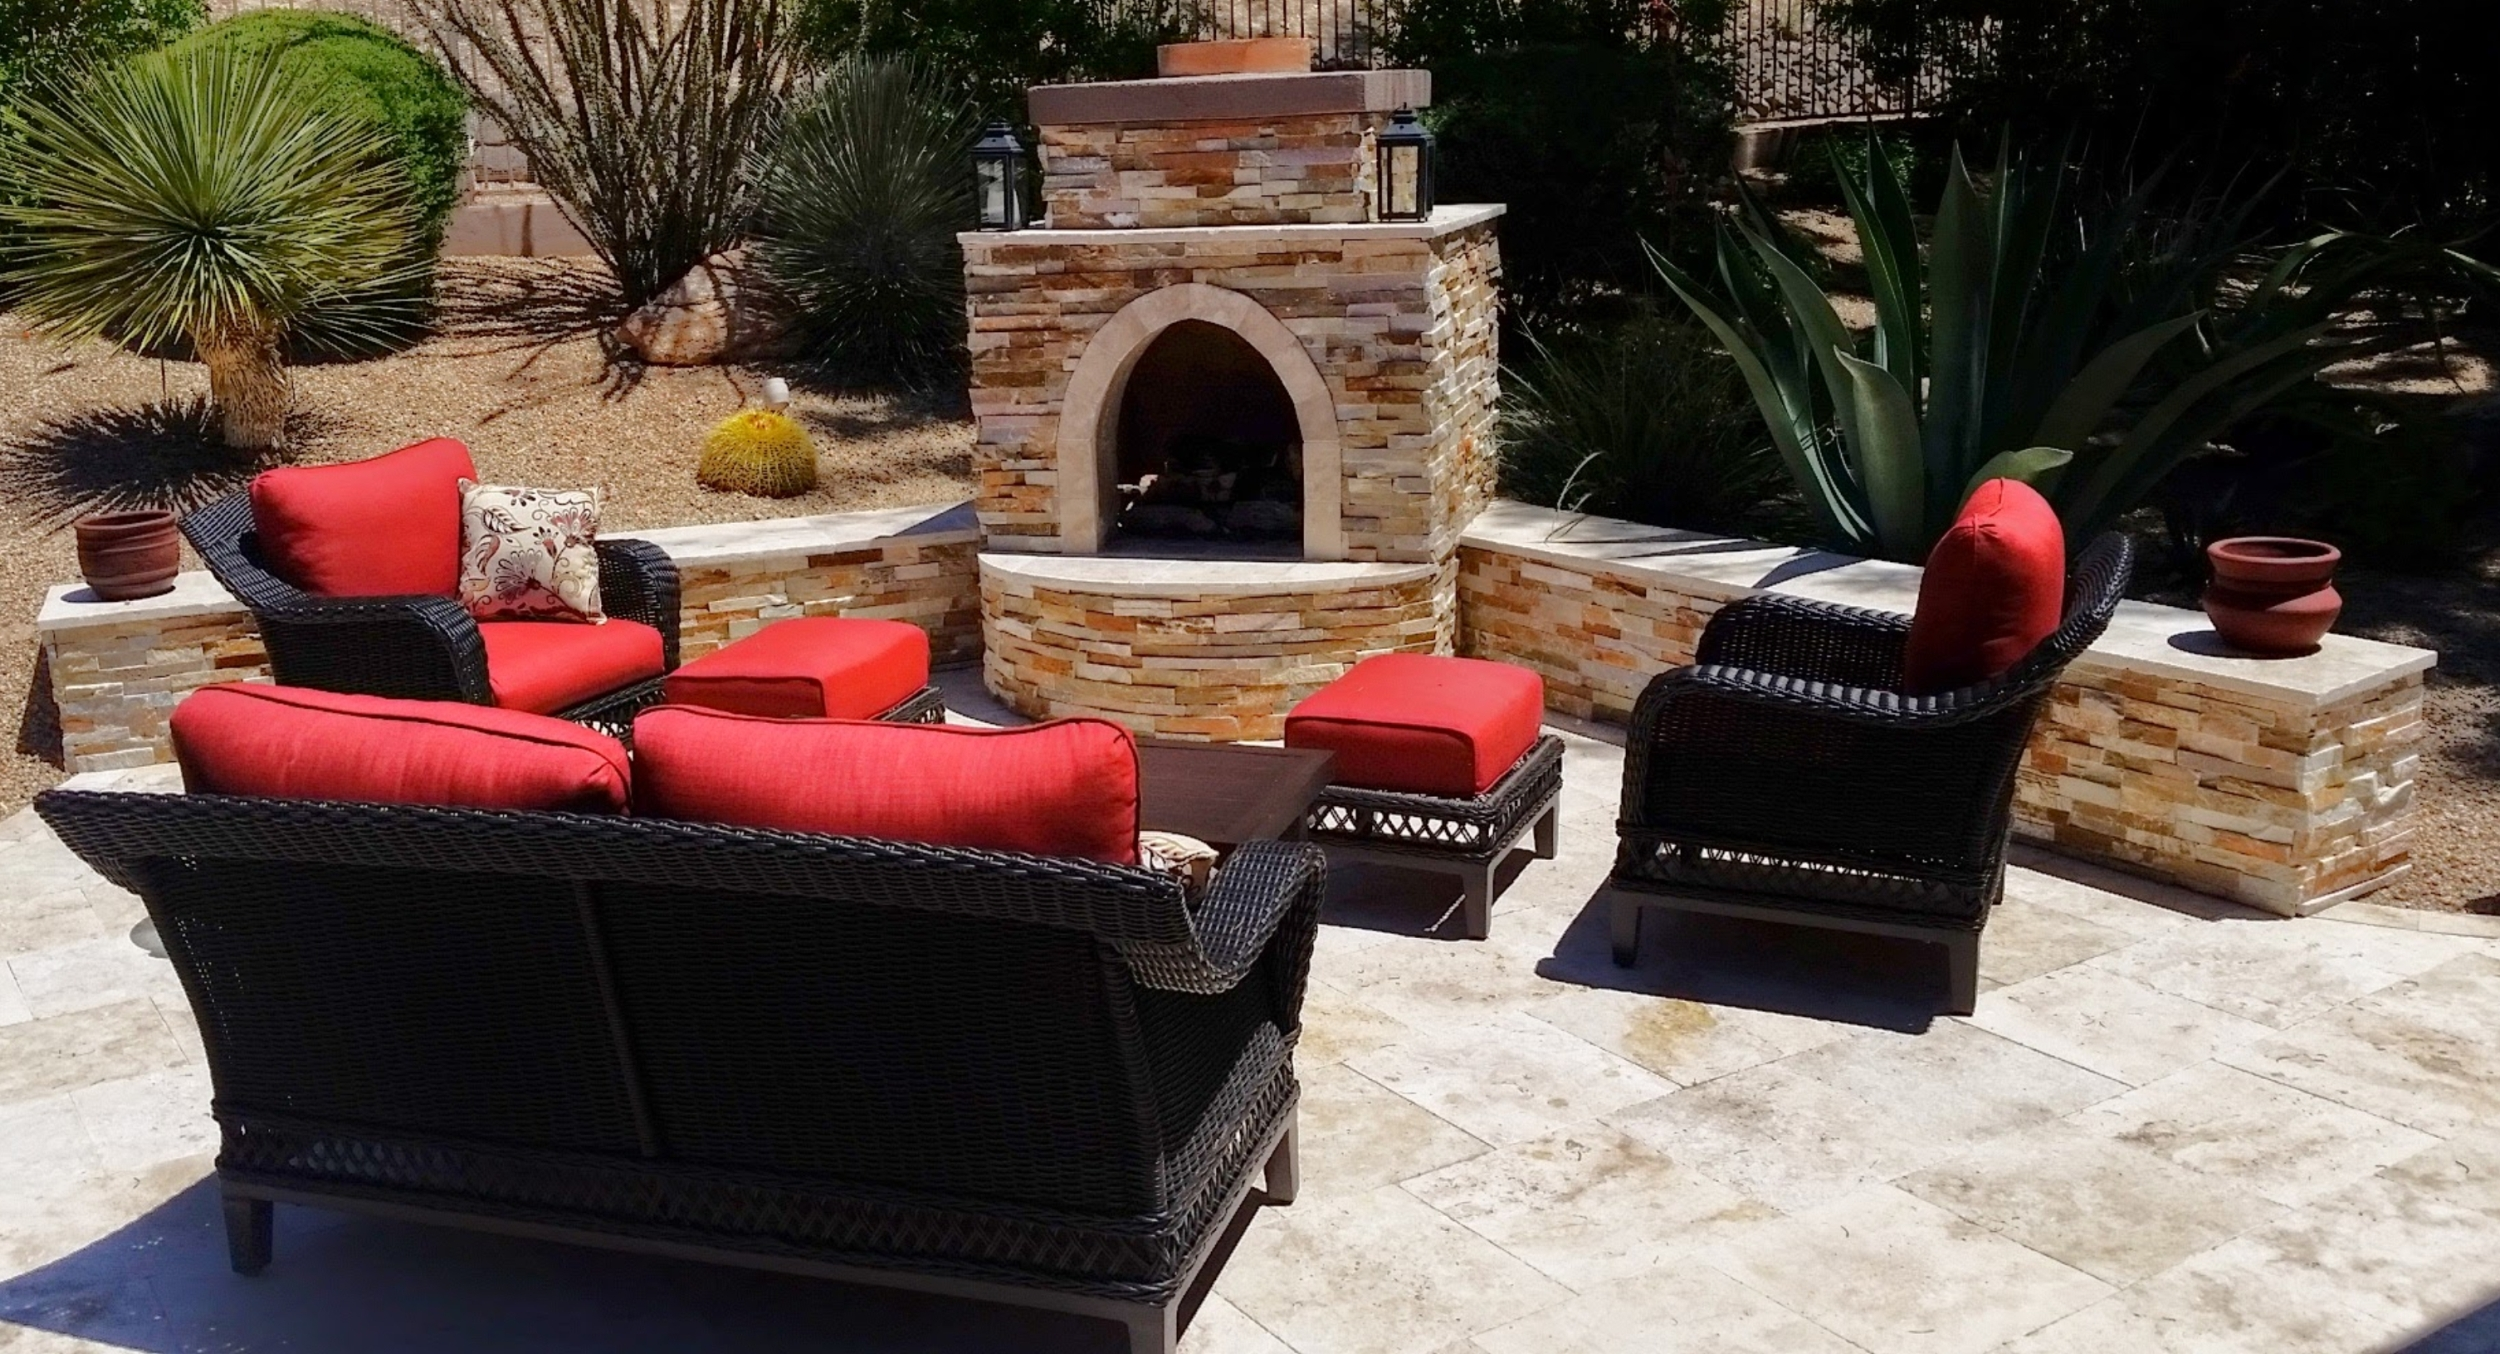 Patio landscaping is way more than a paved space today. We want it enriched with features, like this Phoenix outdoor fireplace made from the same travertine as the new patio as an accent to the Autumn Blend split-face stone veneer.